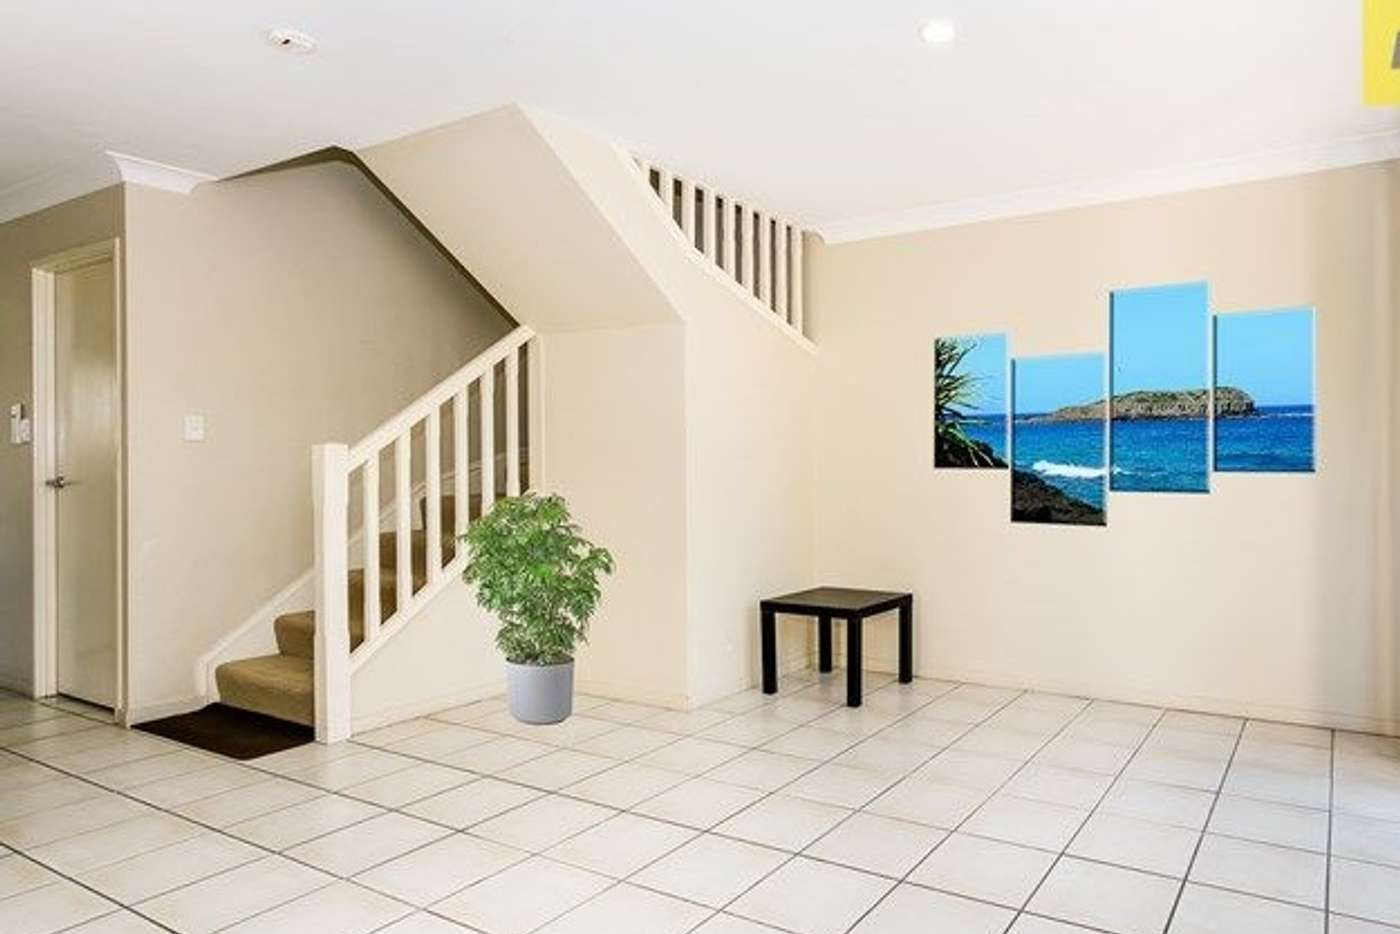 Main view of Homely townhouse listing, 44/36 Rushton St, Runcorn QLD 4113